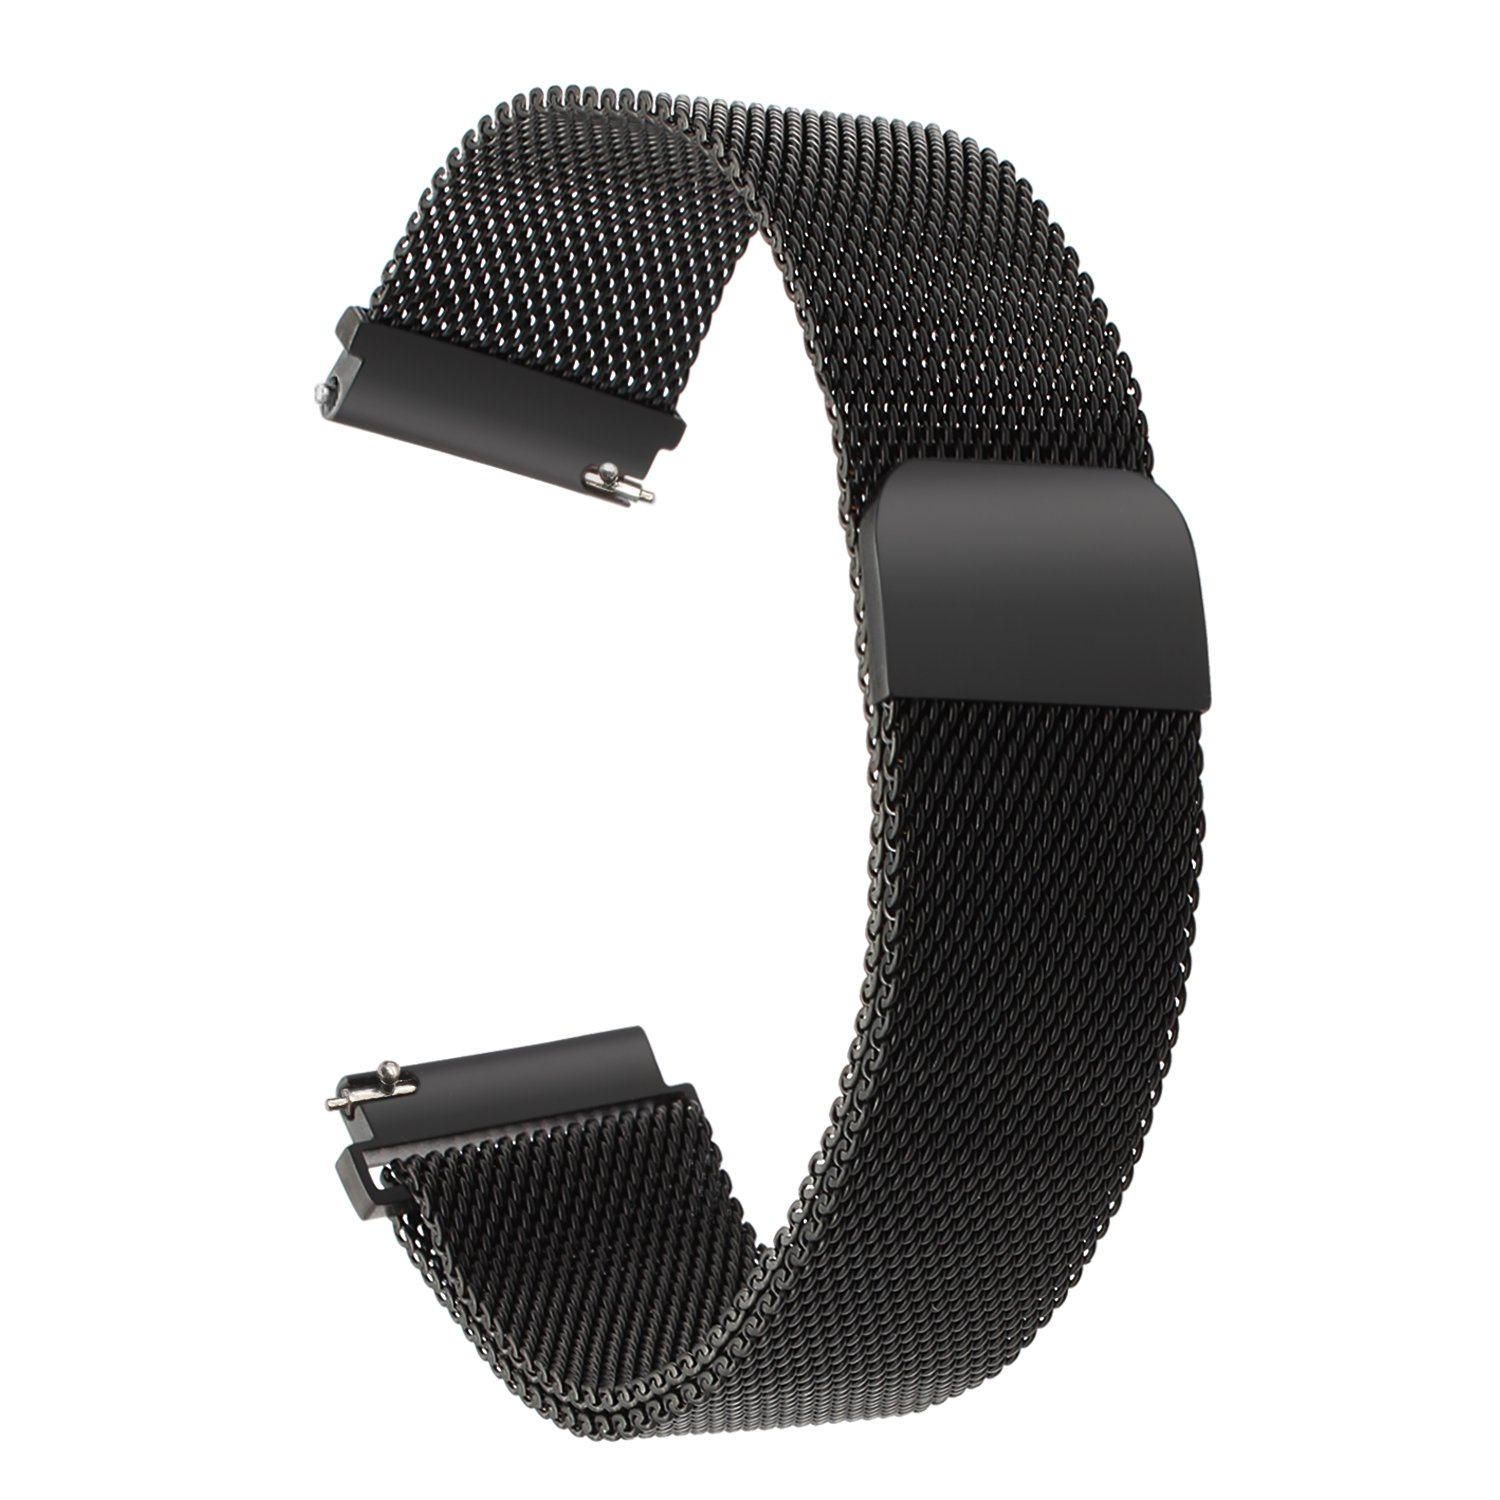 For LG Watch Style Watch Band, TRUMiRR 18mm Milanese Loop Watchband Mesh Stainless Steel Strap Quick Release Magnetic Wrist Bracelet for LG Watch Style Band Smart Watch, Black by TRUMiRR